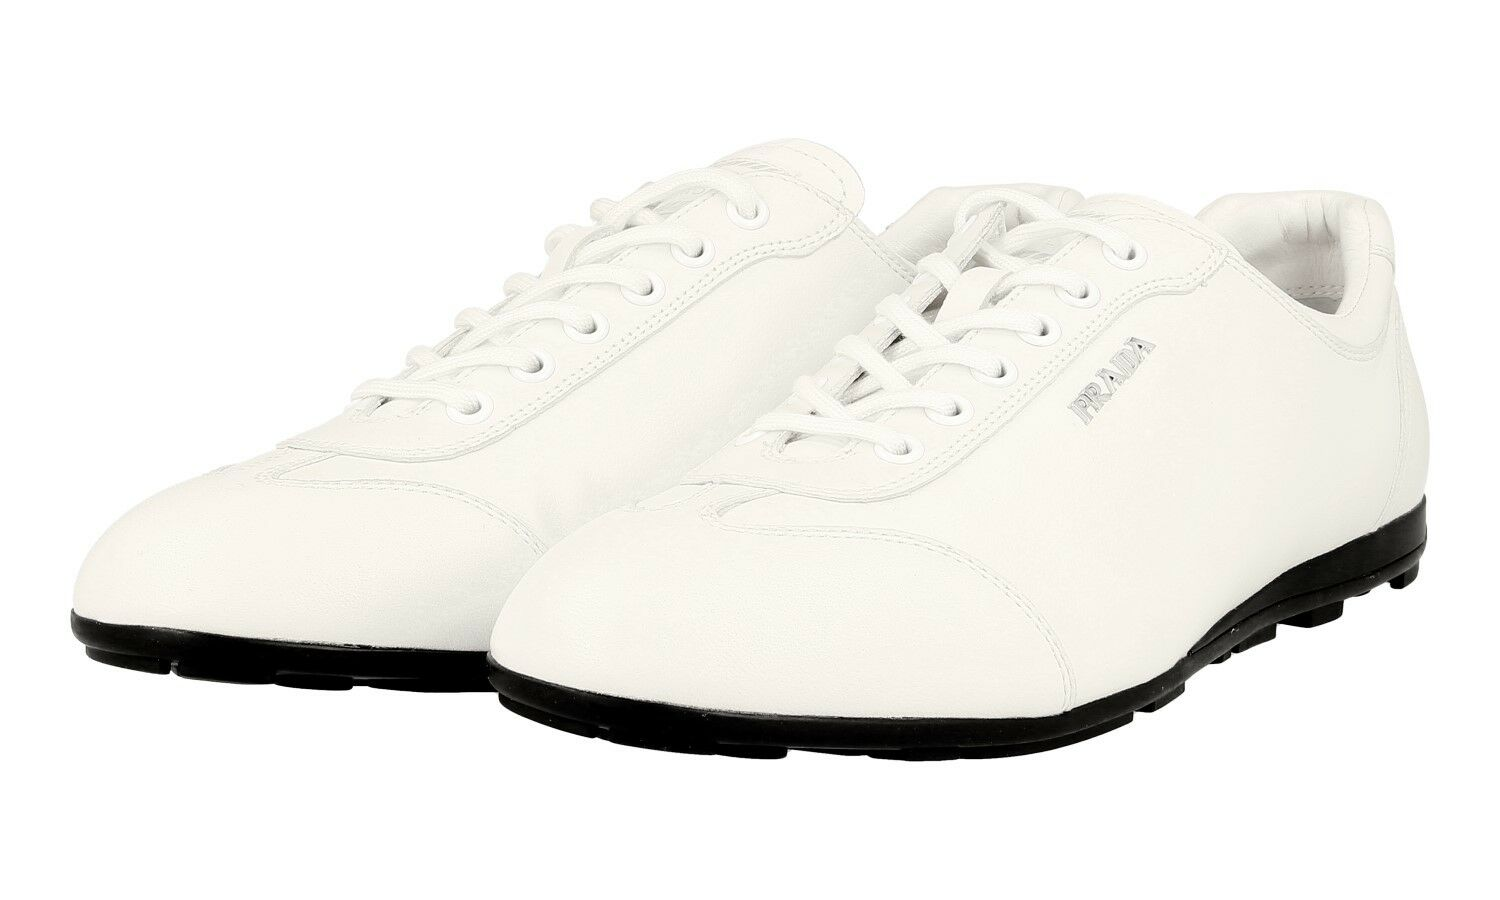 AUTHENTIC LUXURY PRADA baskets chaussures 3E4900 3E4900 3E4900 blanc NEW US 9.5 EU 39,5 40 UK 6.5 895dfe